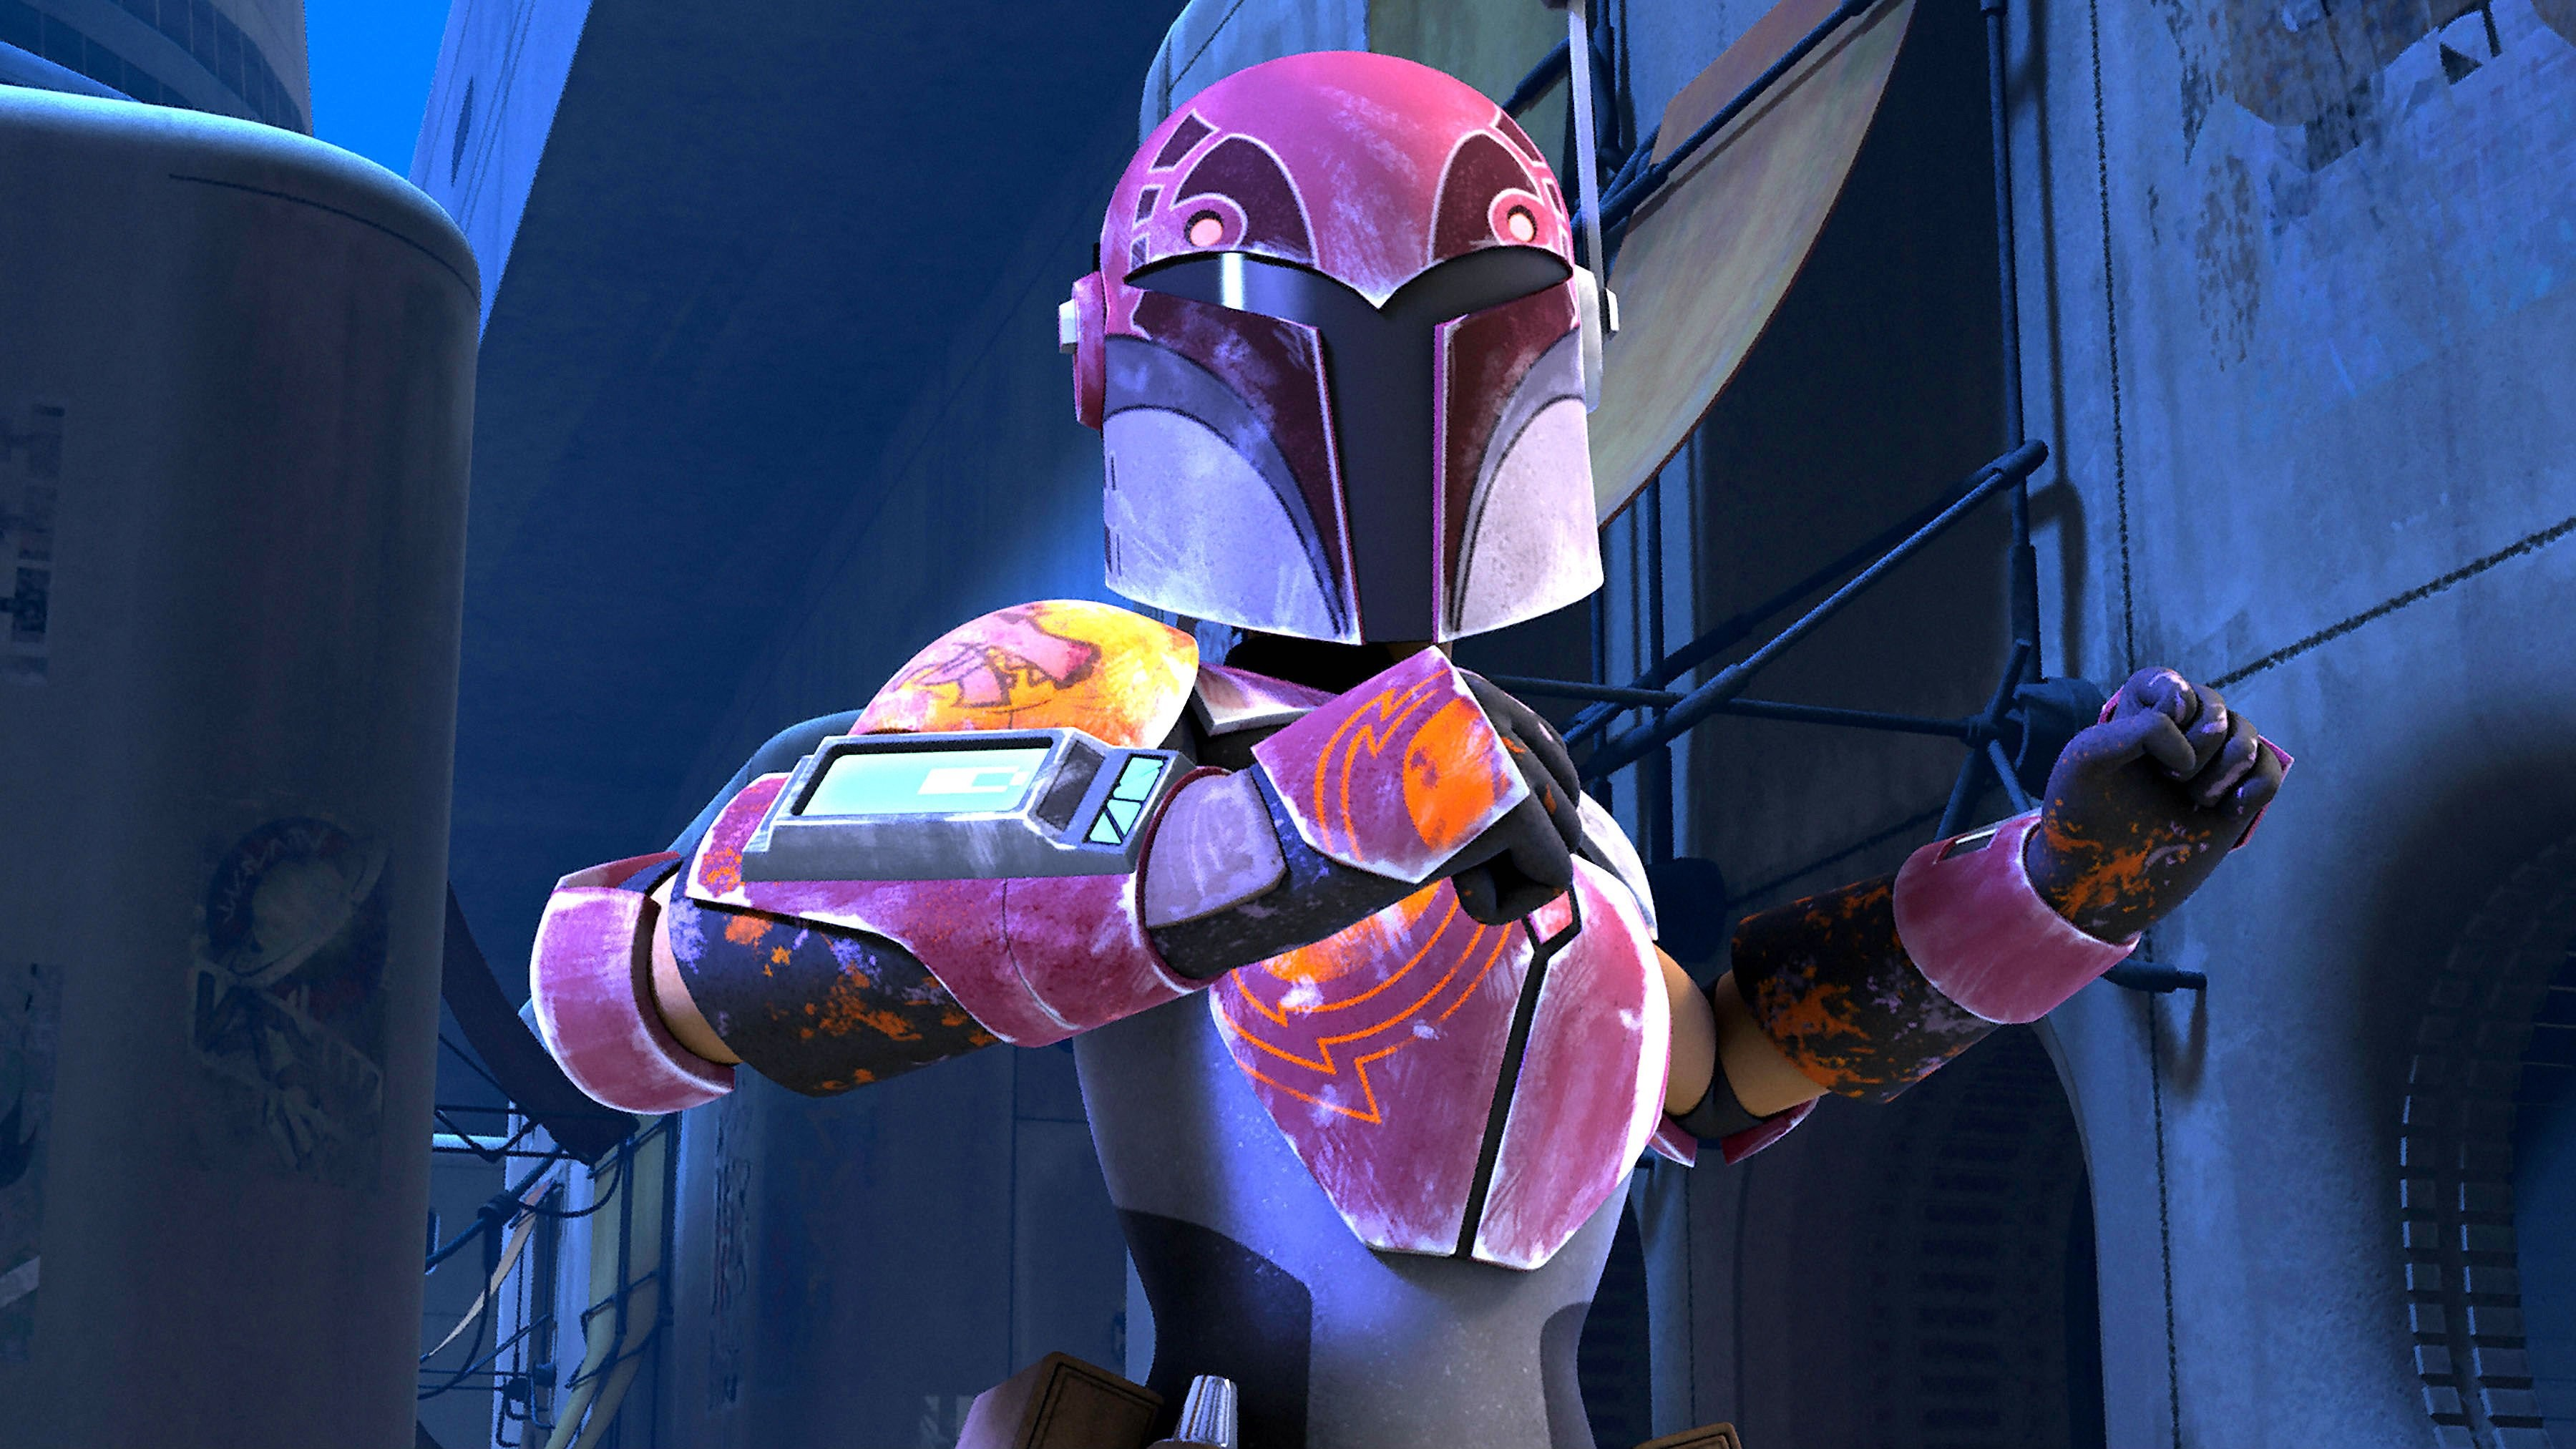 STAR WARS REBELS animated series sci-fi disney action adventure wallpaper |  | 533636 | WallpaperUP